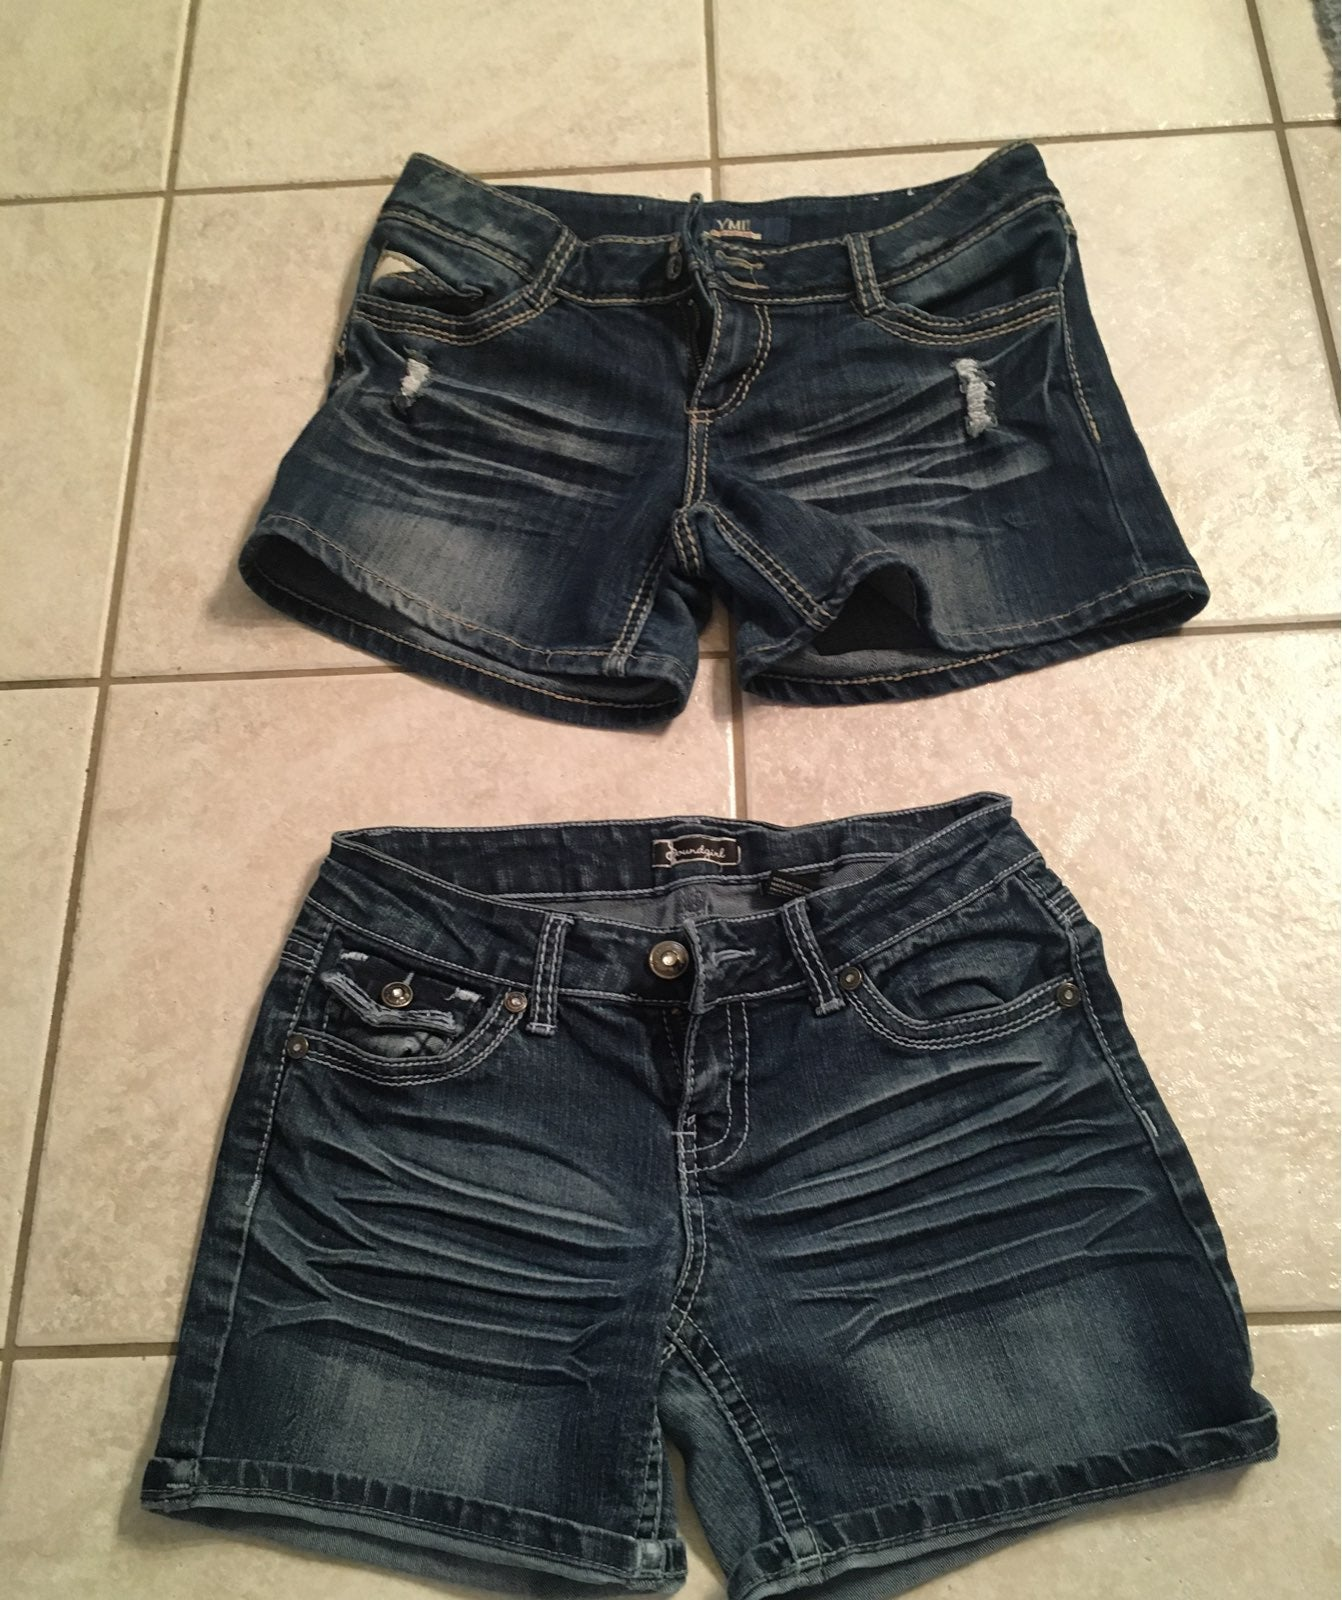 Two pair of junior size 7 jean shorts